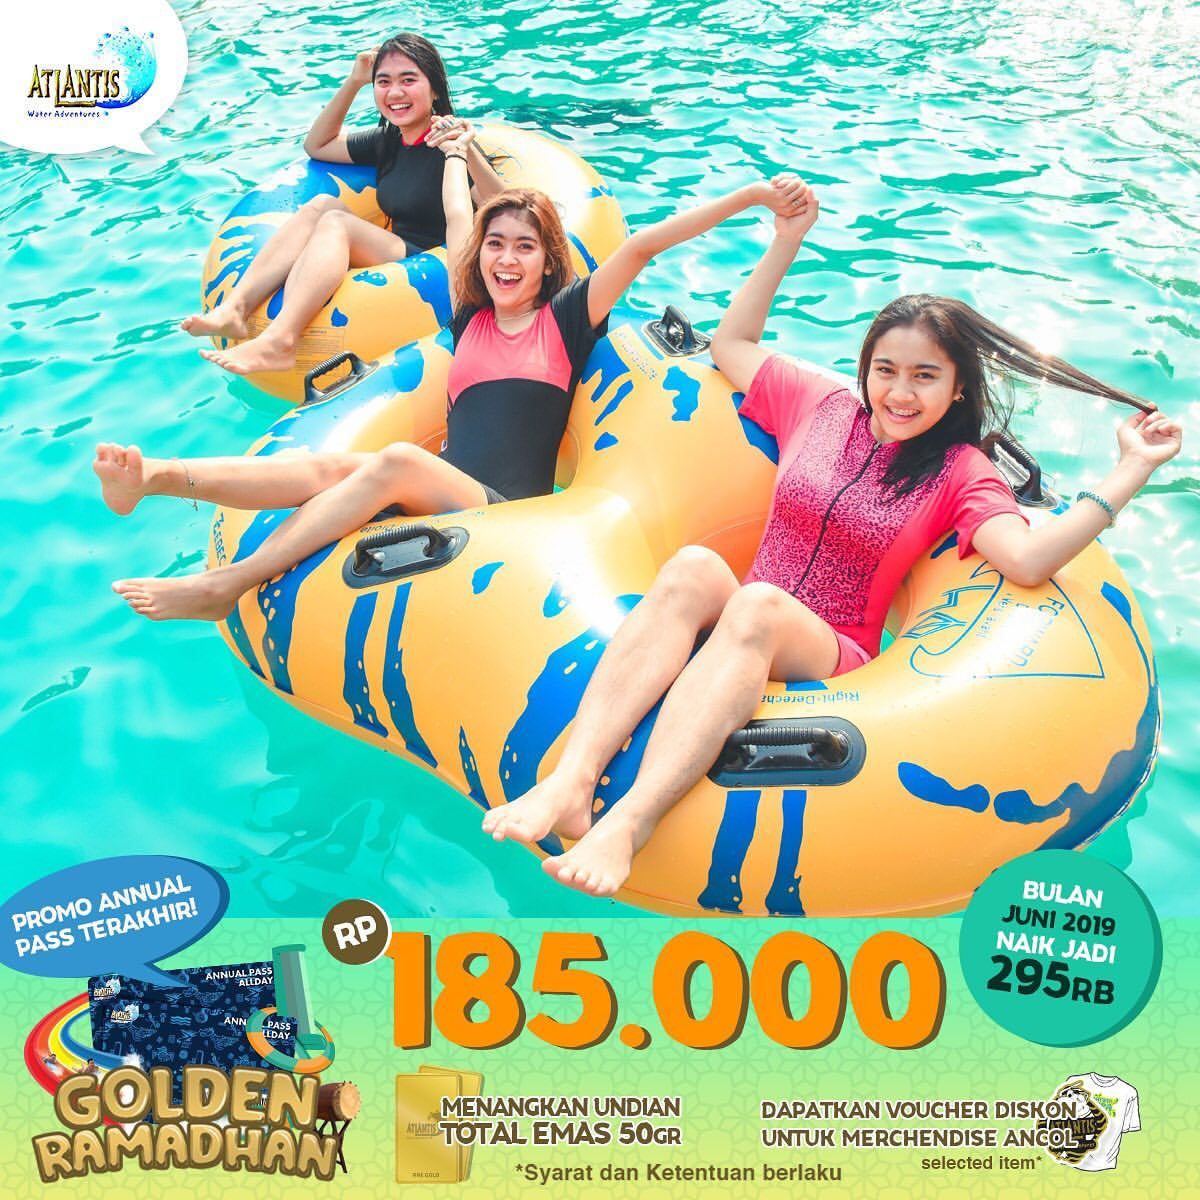 Diskon Atlantis Water Adventure Promo ATLANTIS GOLDEN RAMADHAN Harga Spesial Annual Pass AllDays cuma Rp.18